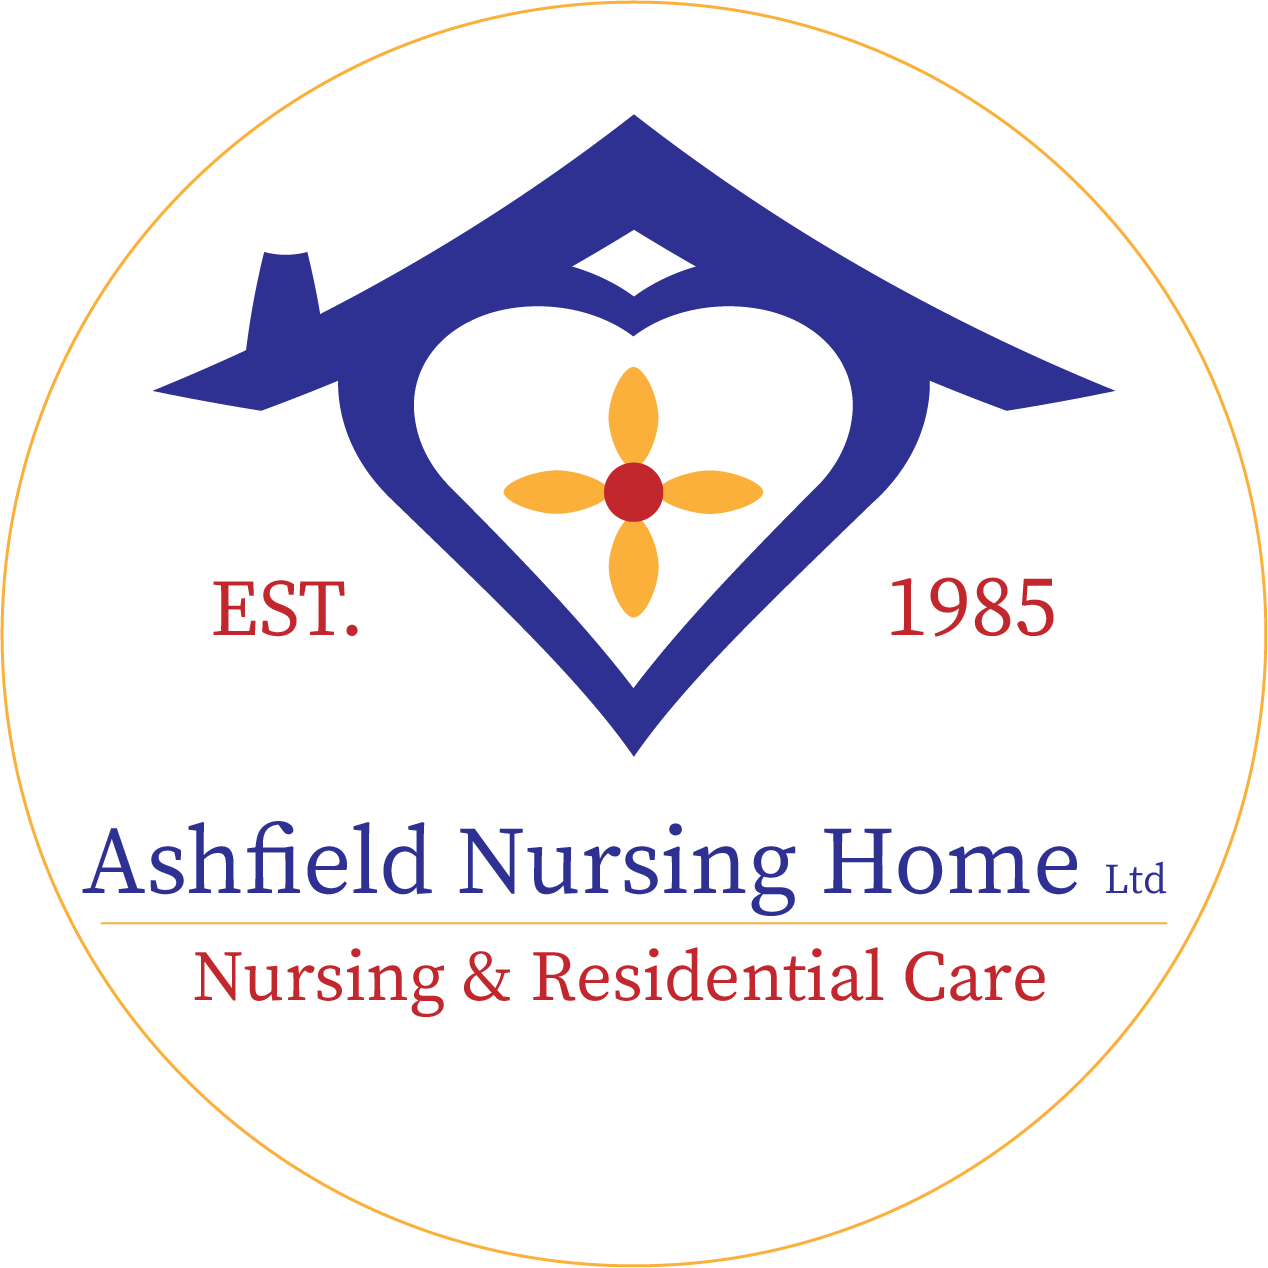 Ashfield Nursing Home